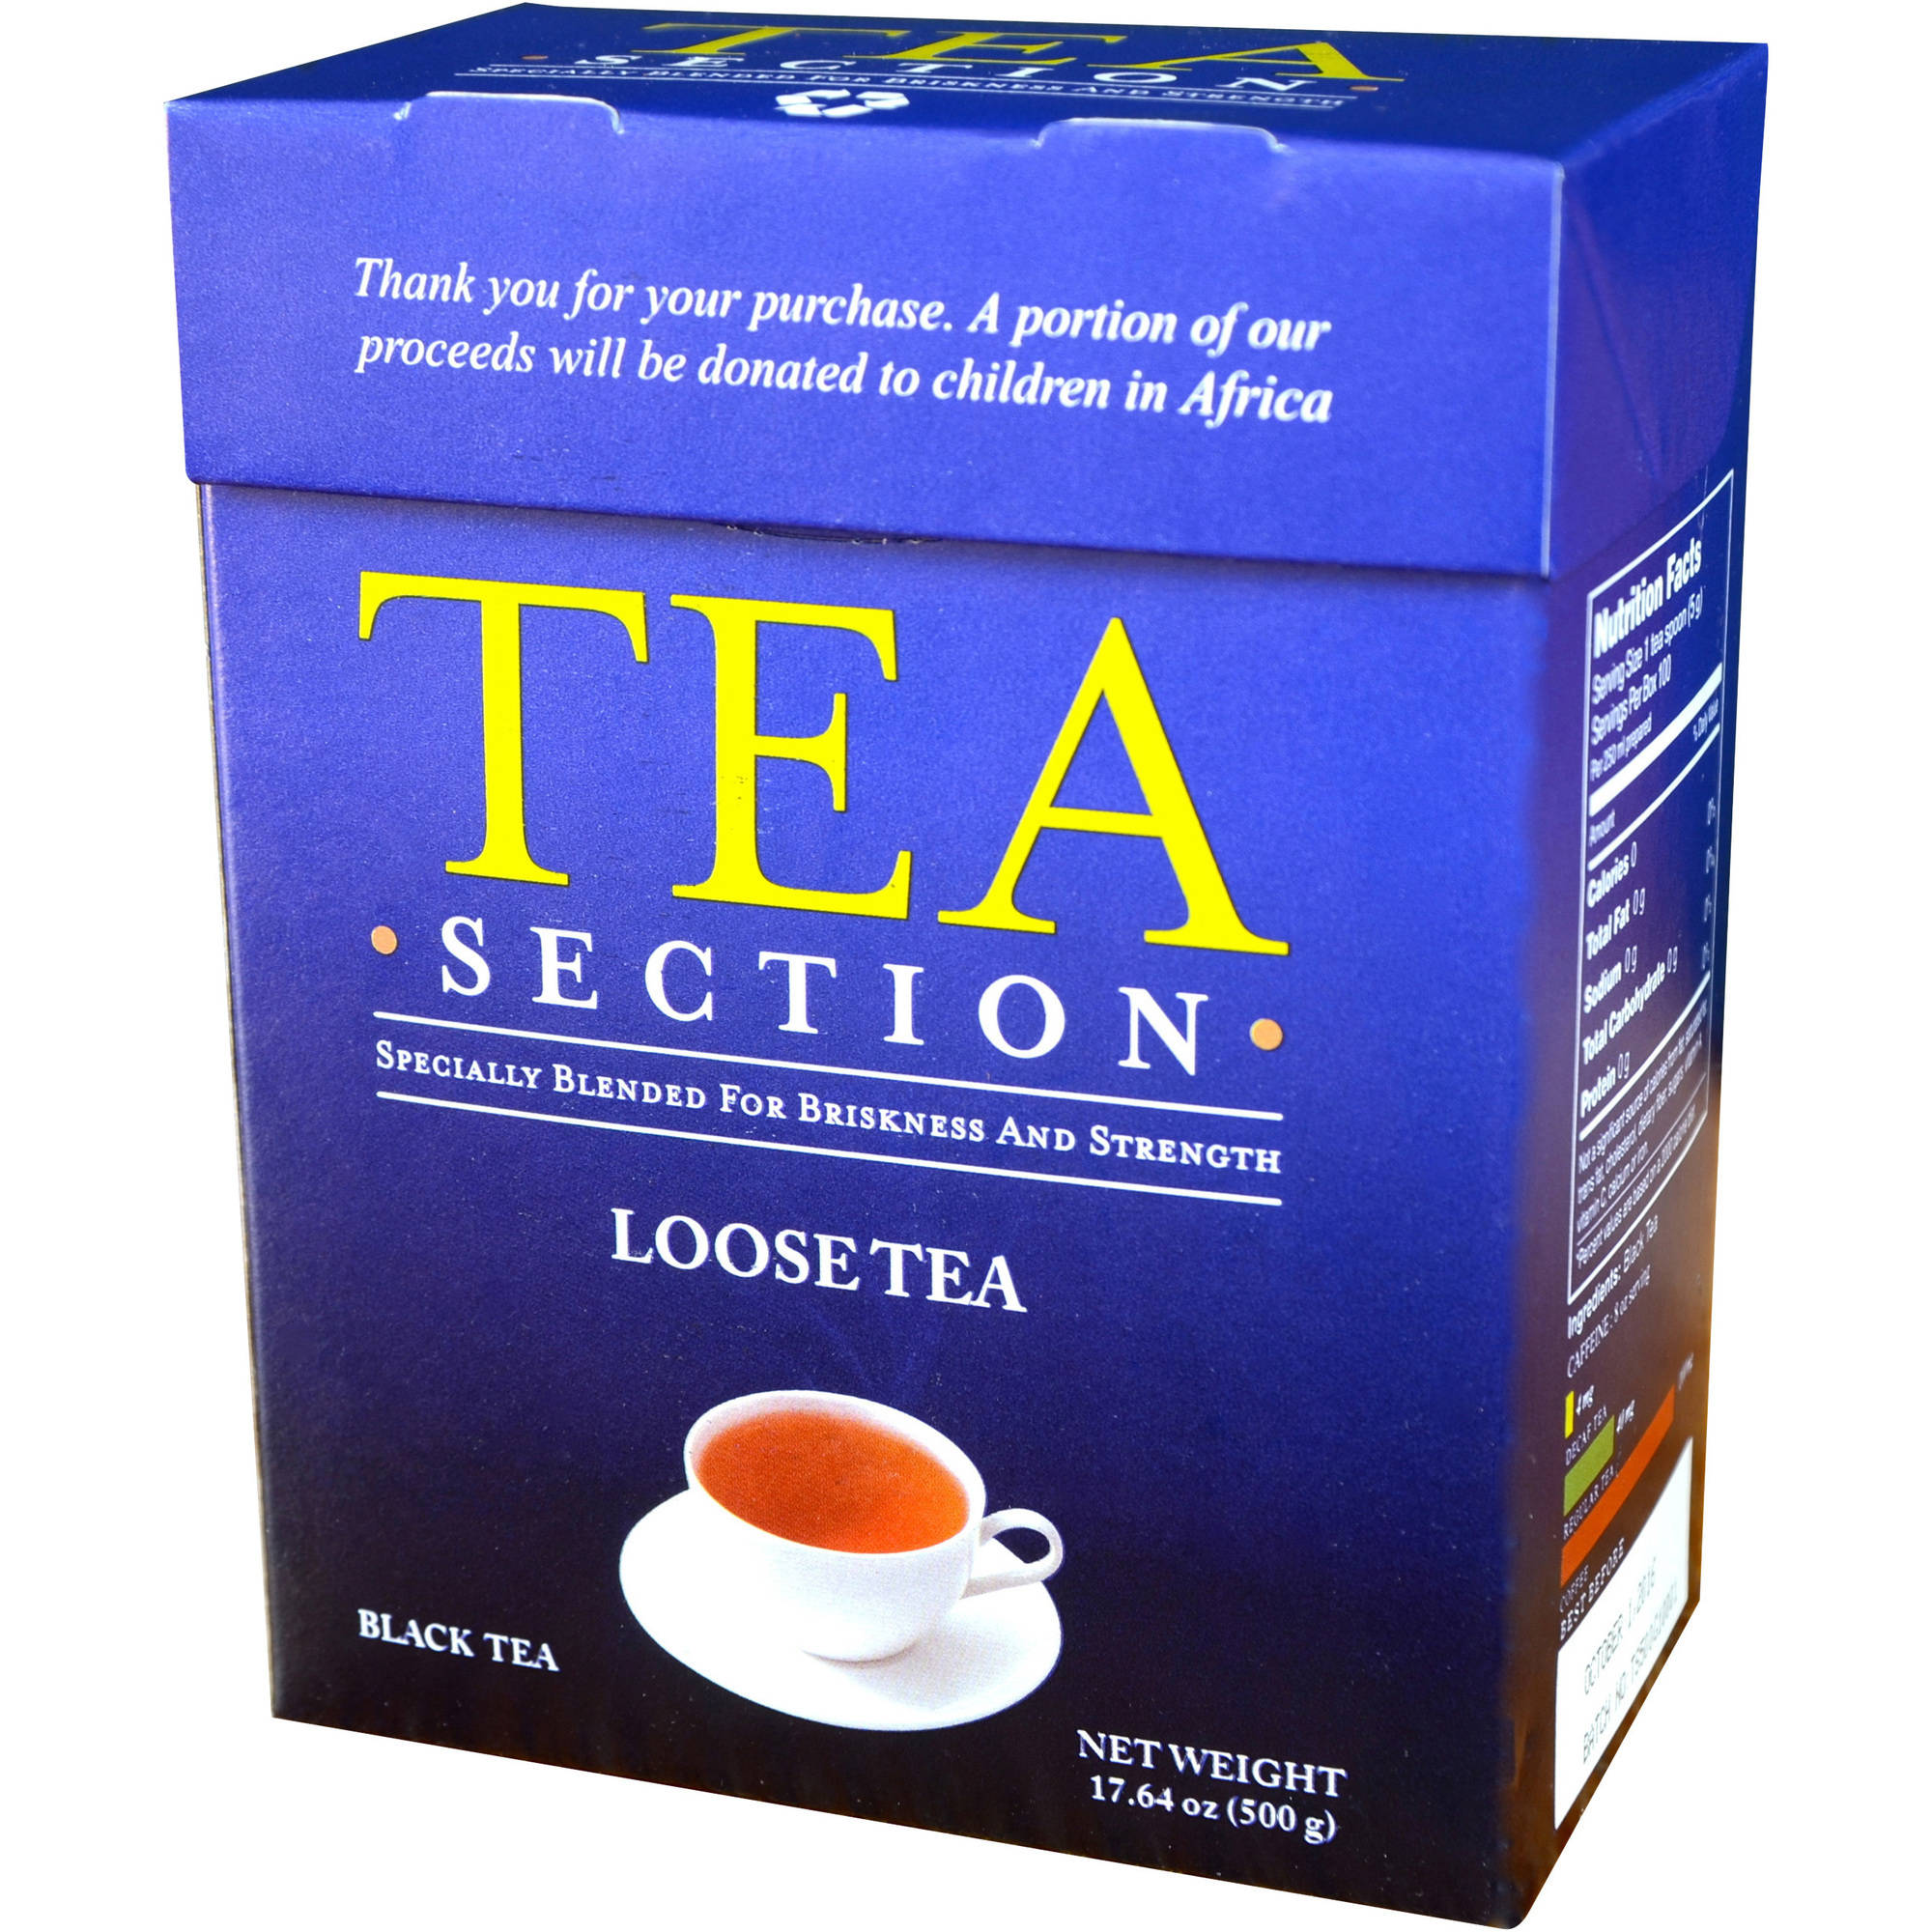 Tea Section Loose Tea Black Tea, 17.64 oz